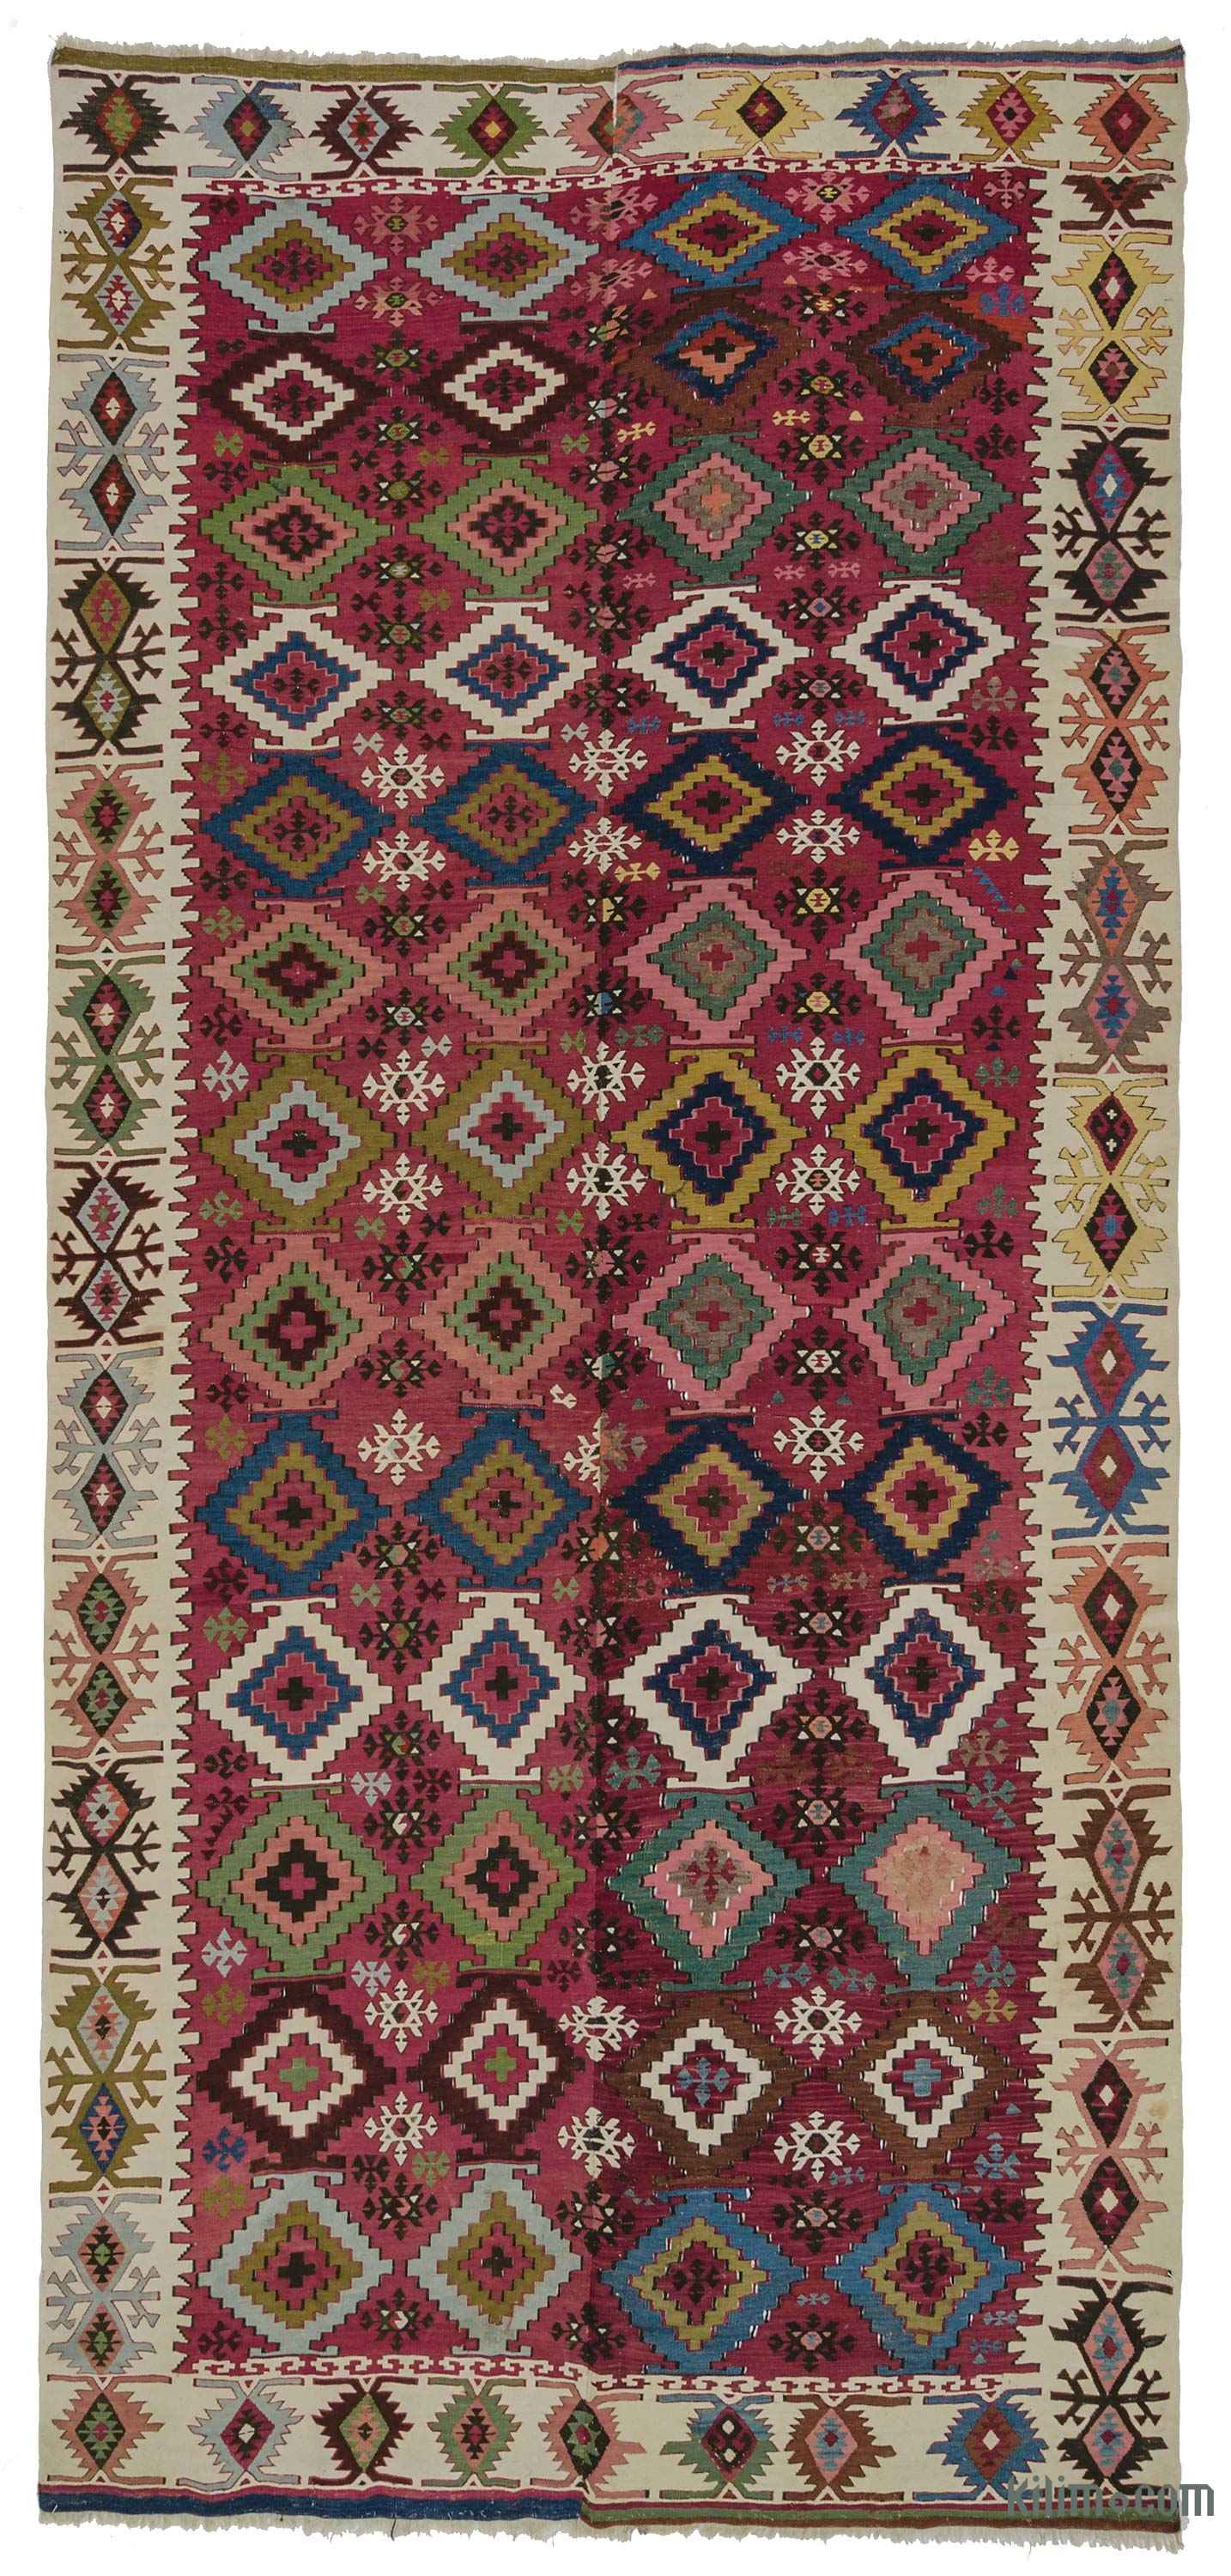 Rugs And Kilims Are The Master Elements Of Bohemian Style: Antique Adana Kilim Rug